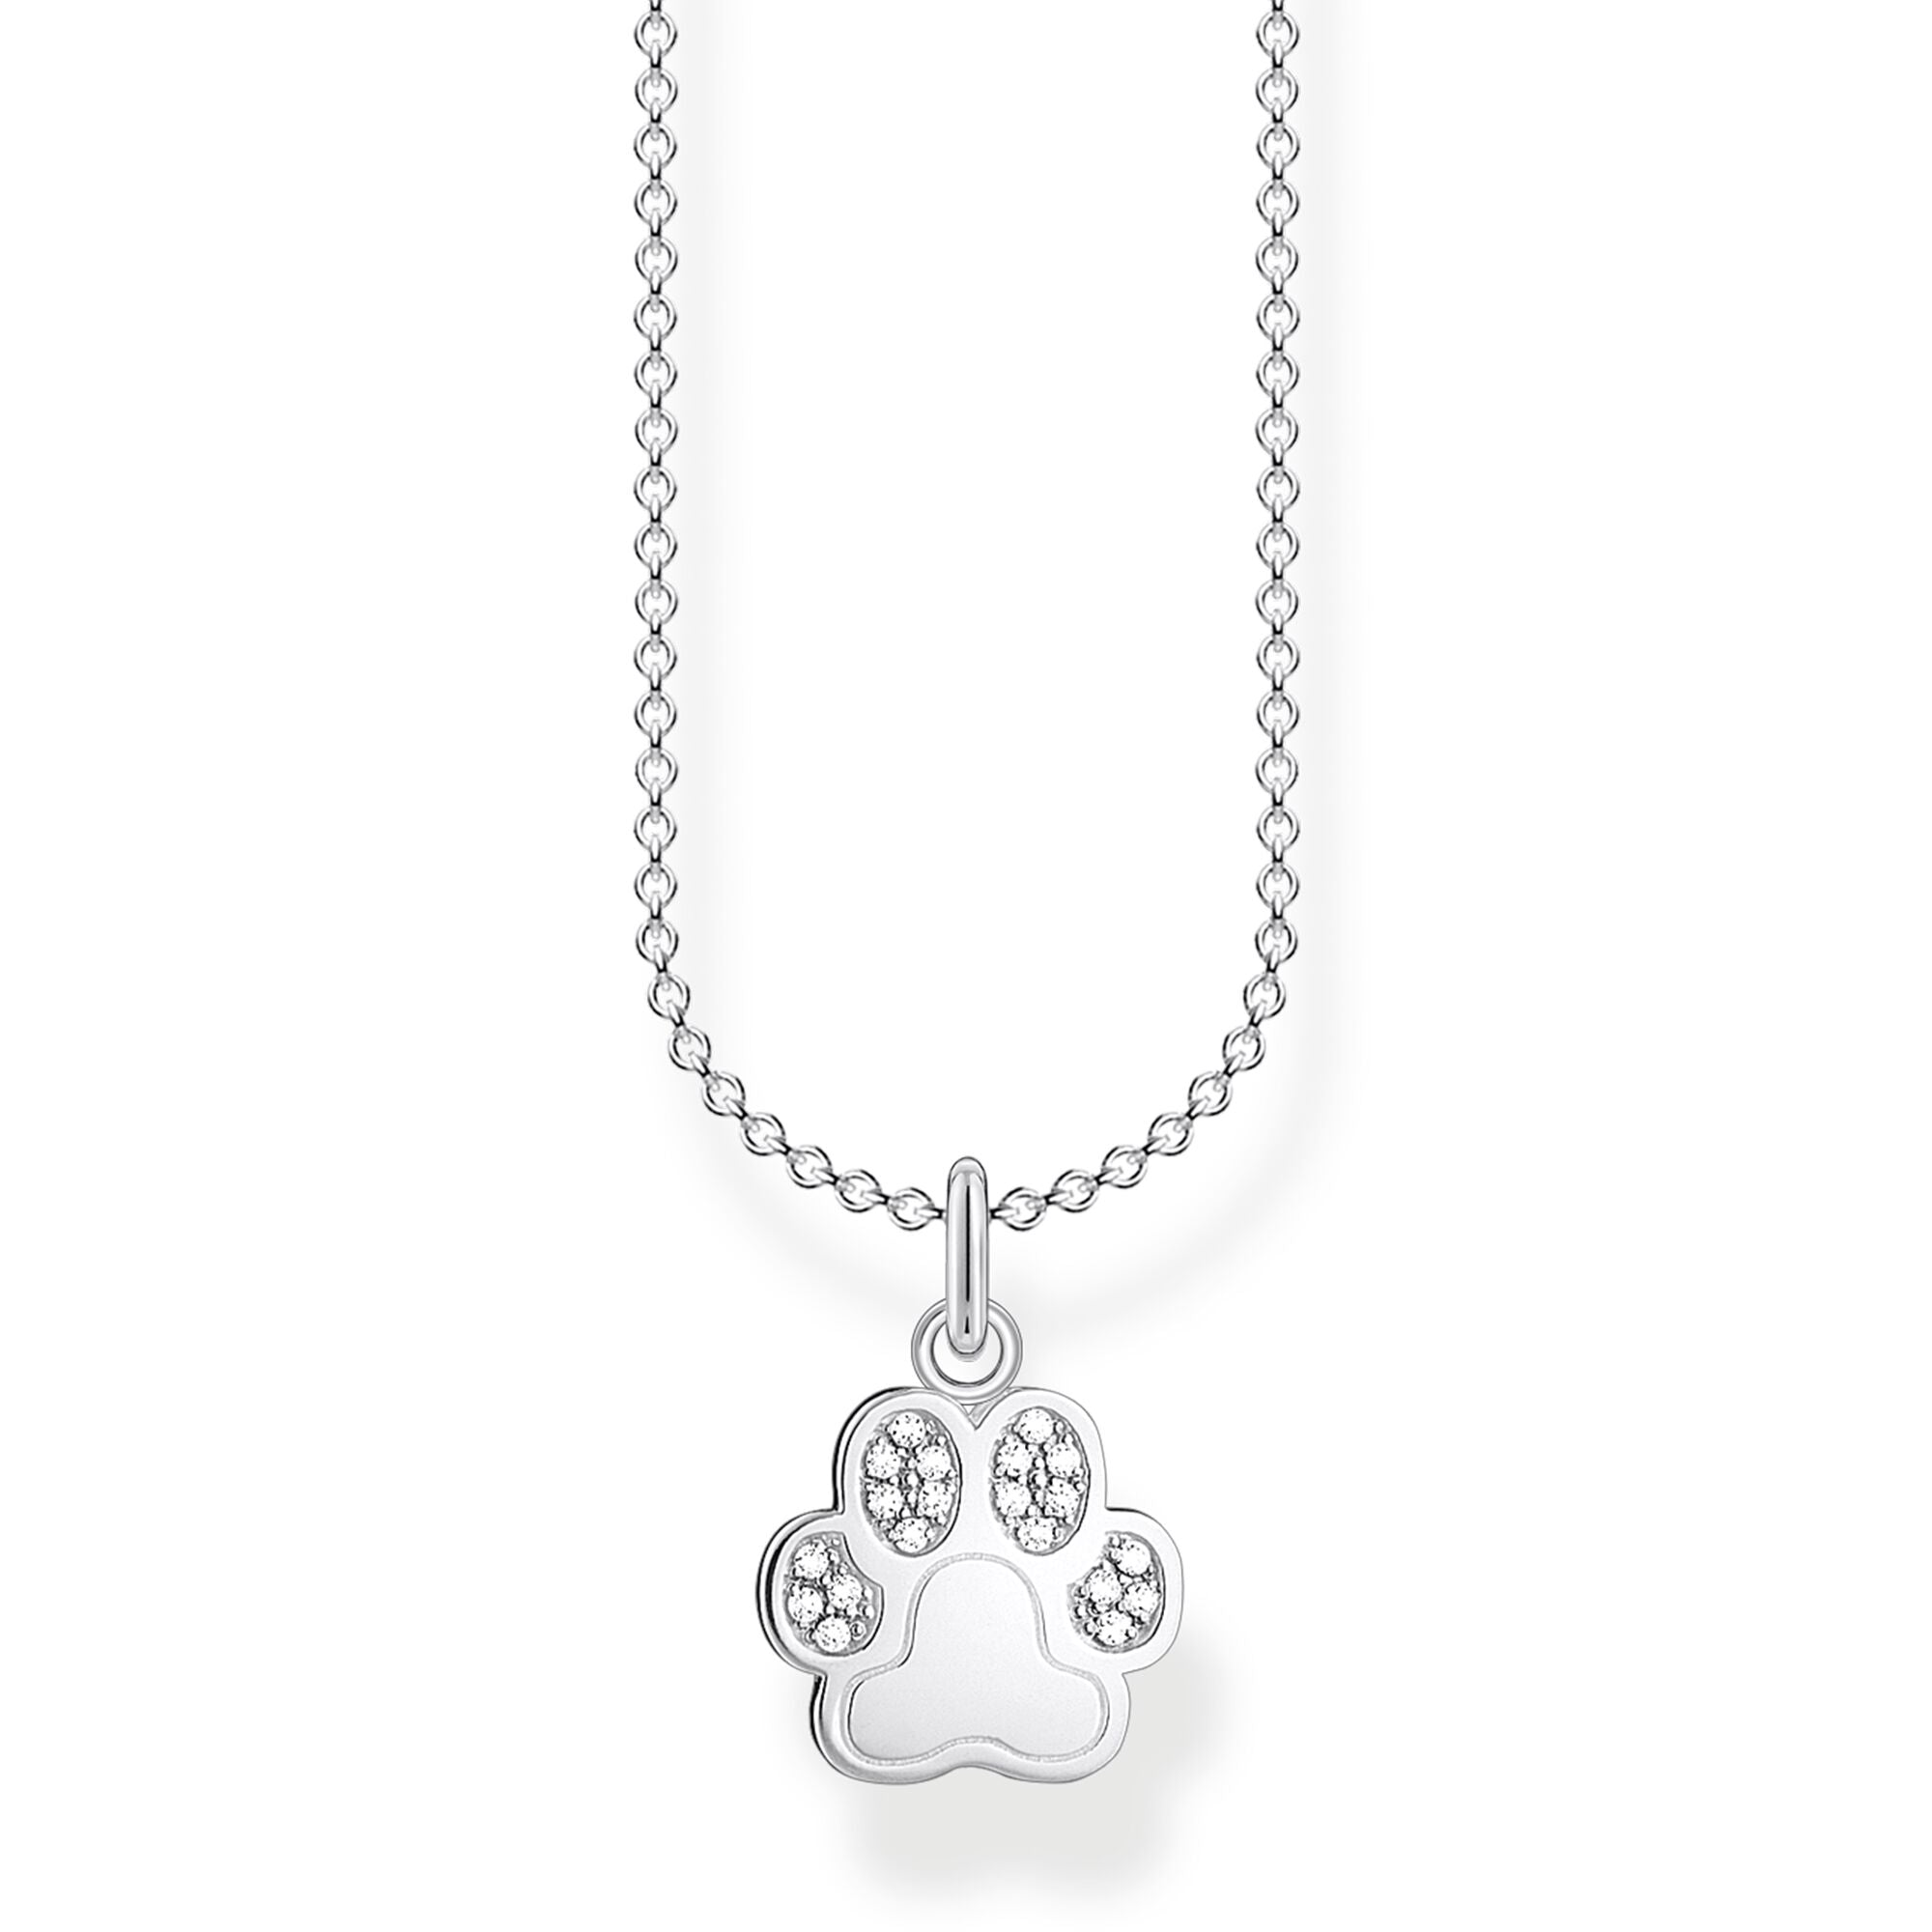 STERLING SILVER CHARMING COLLECTION PAW PRINT NECKLACE 38-45CM